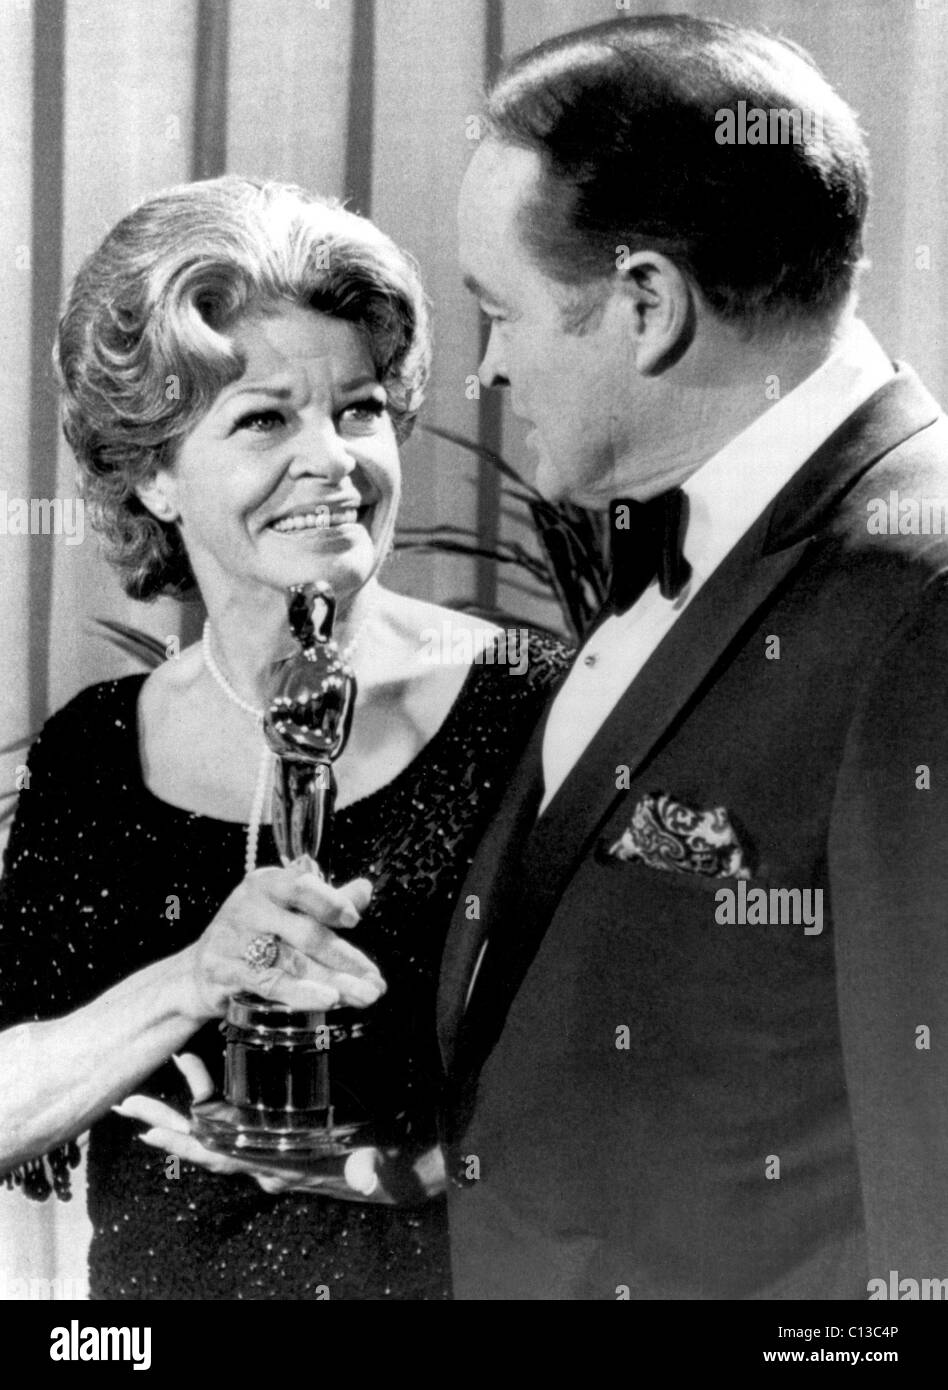 MARTHA RAYE gets a belated Jean Hersholt Humanitarian Award (for entertaining WWII troops) from pal/emcee BOB HOPE - Stock Image